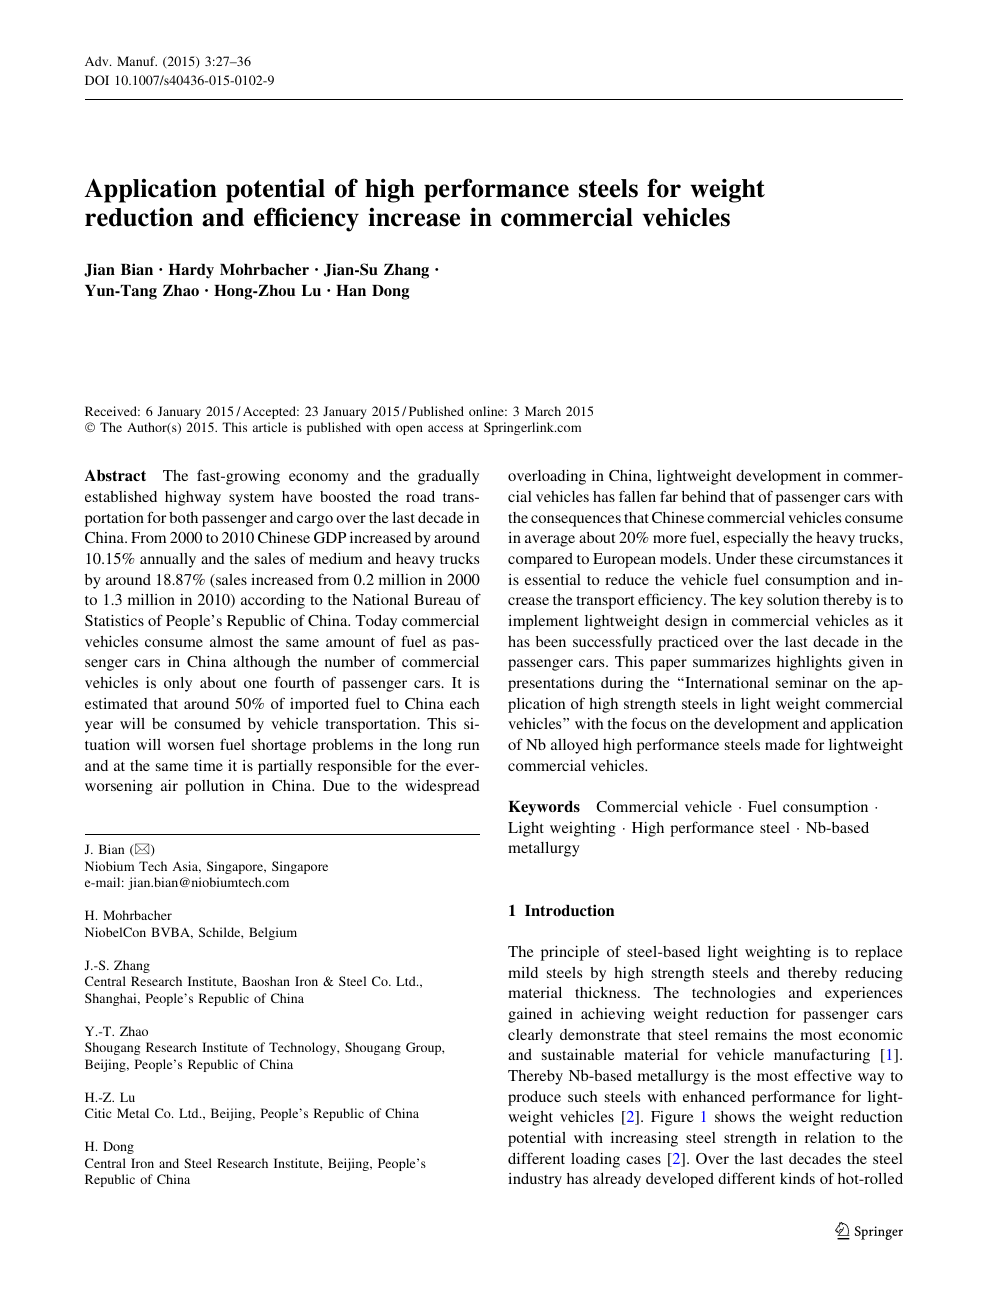 Application Potential Of High Performance Steels For Weight Reduction And Efficiency Increase In Commercial Vehicles Topic Of Research Paper In Materials Engineering Download Scholarly Article Pdf And Read For Free On